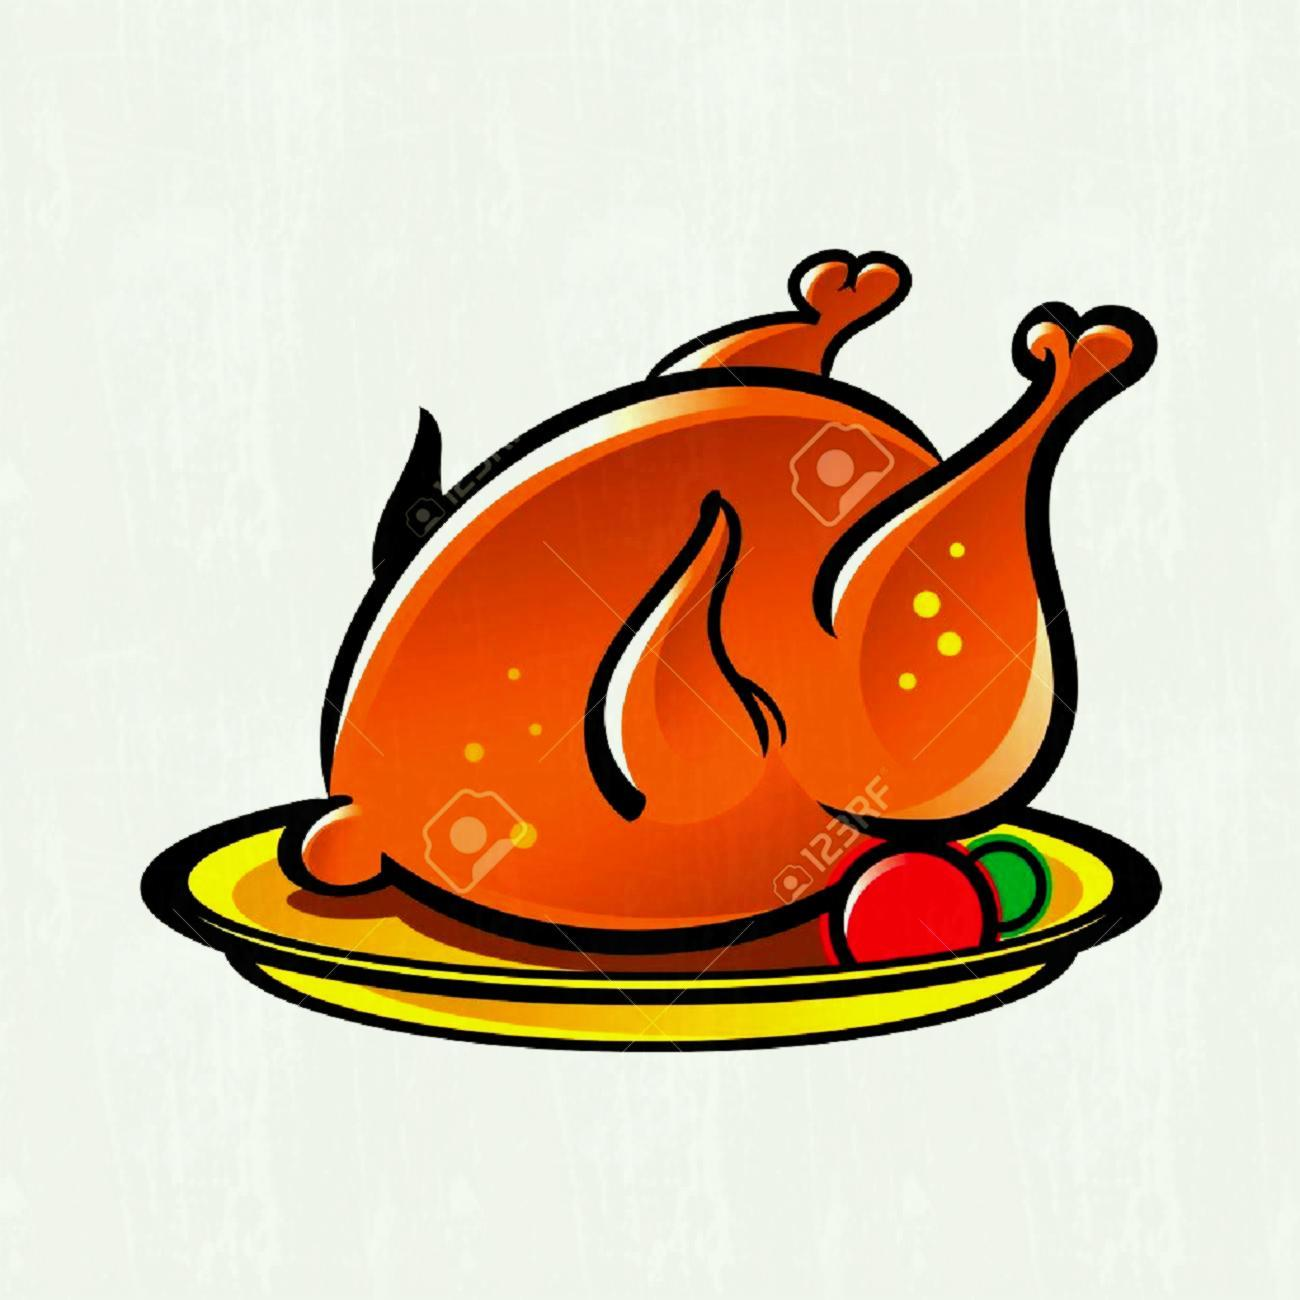 Cooked chicken clipart clipart library stock Clipart of cooked chicken 2 » Clipart Portal clipart library stock